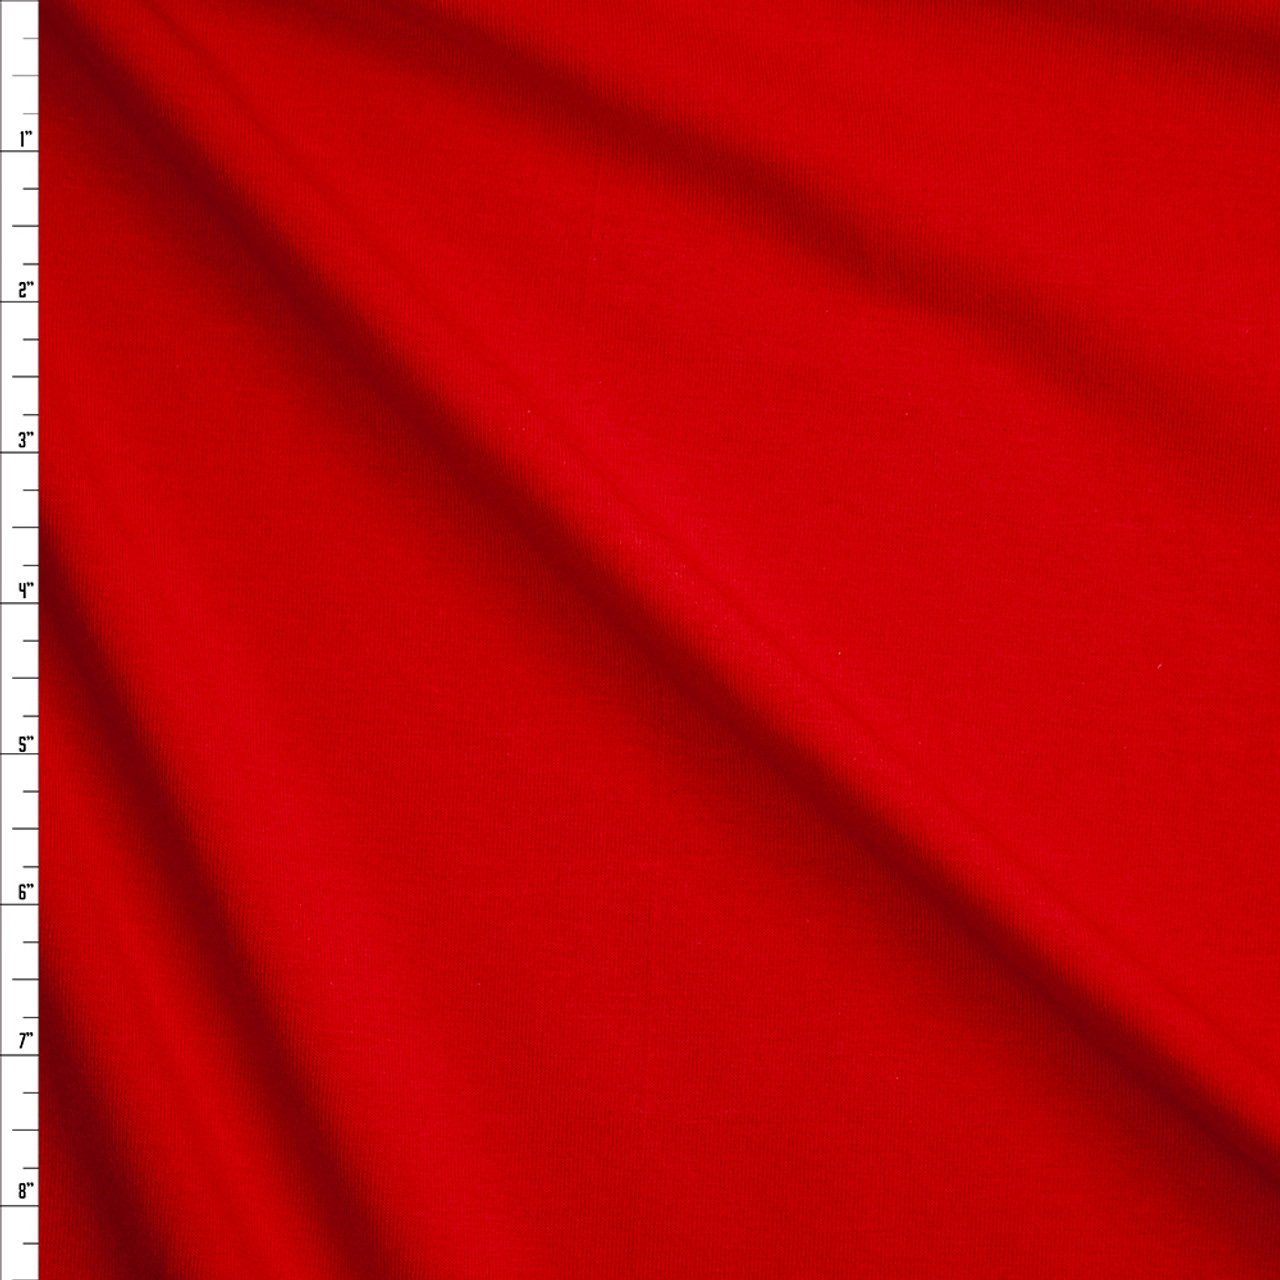 Cali Fabrics Red Stretch Midweight Cotton Jersey Knit Fabric By The Yard